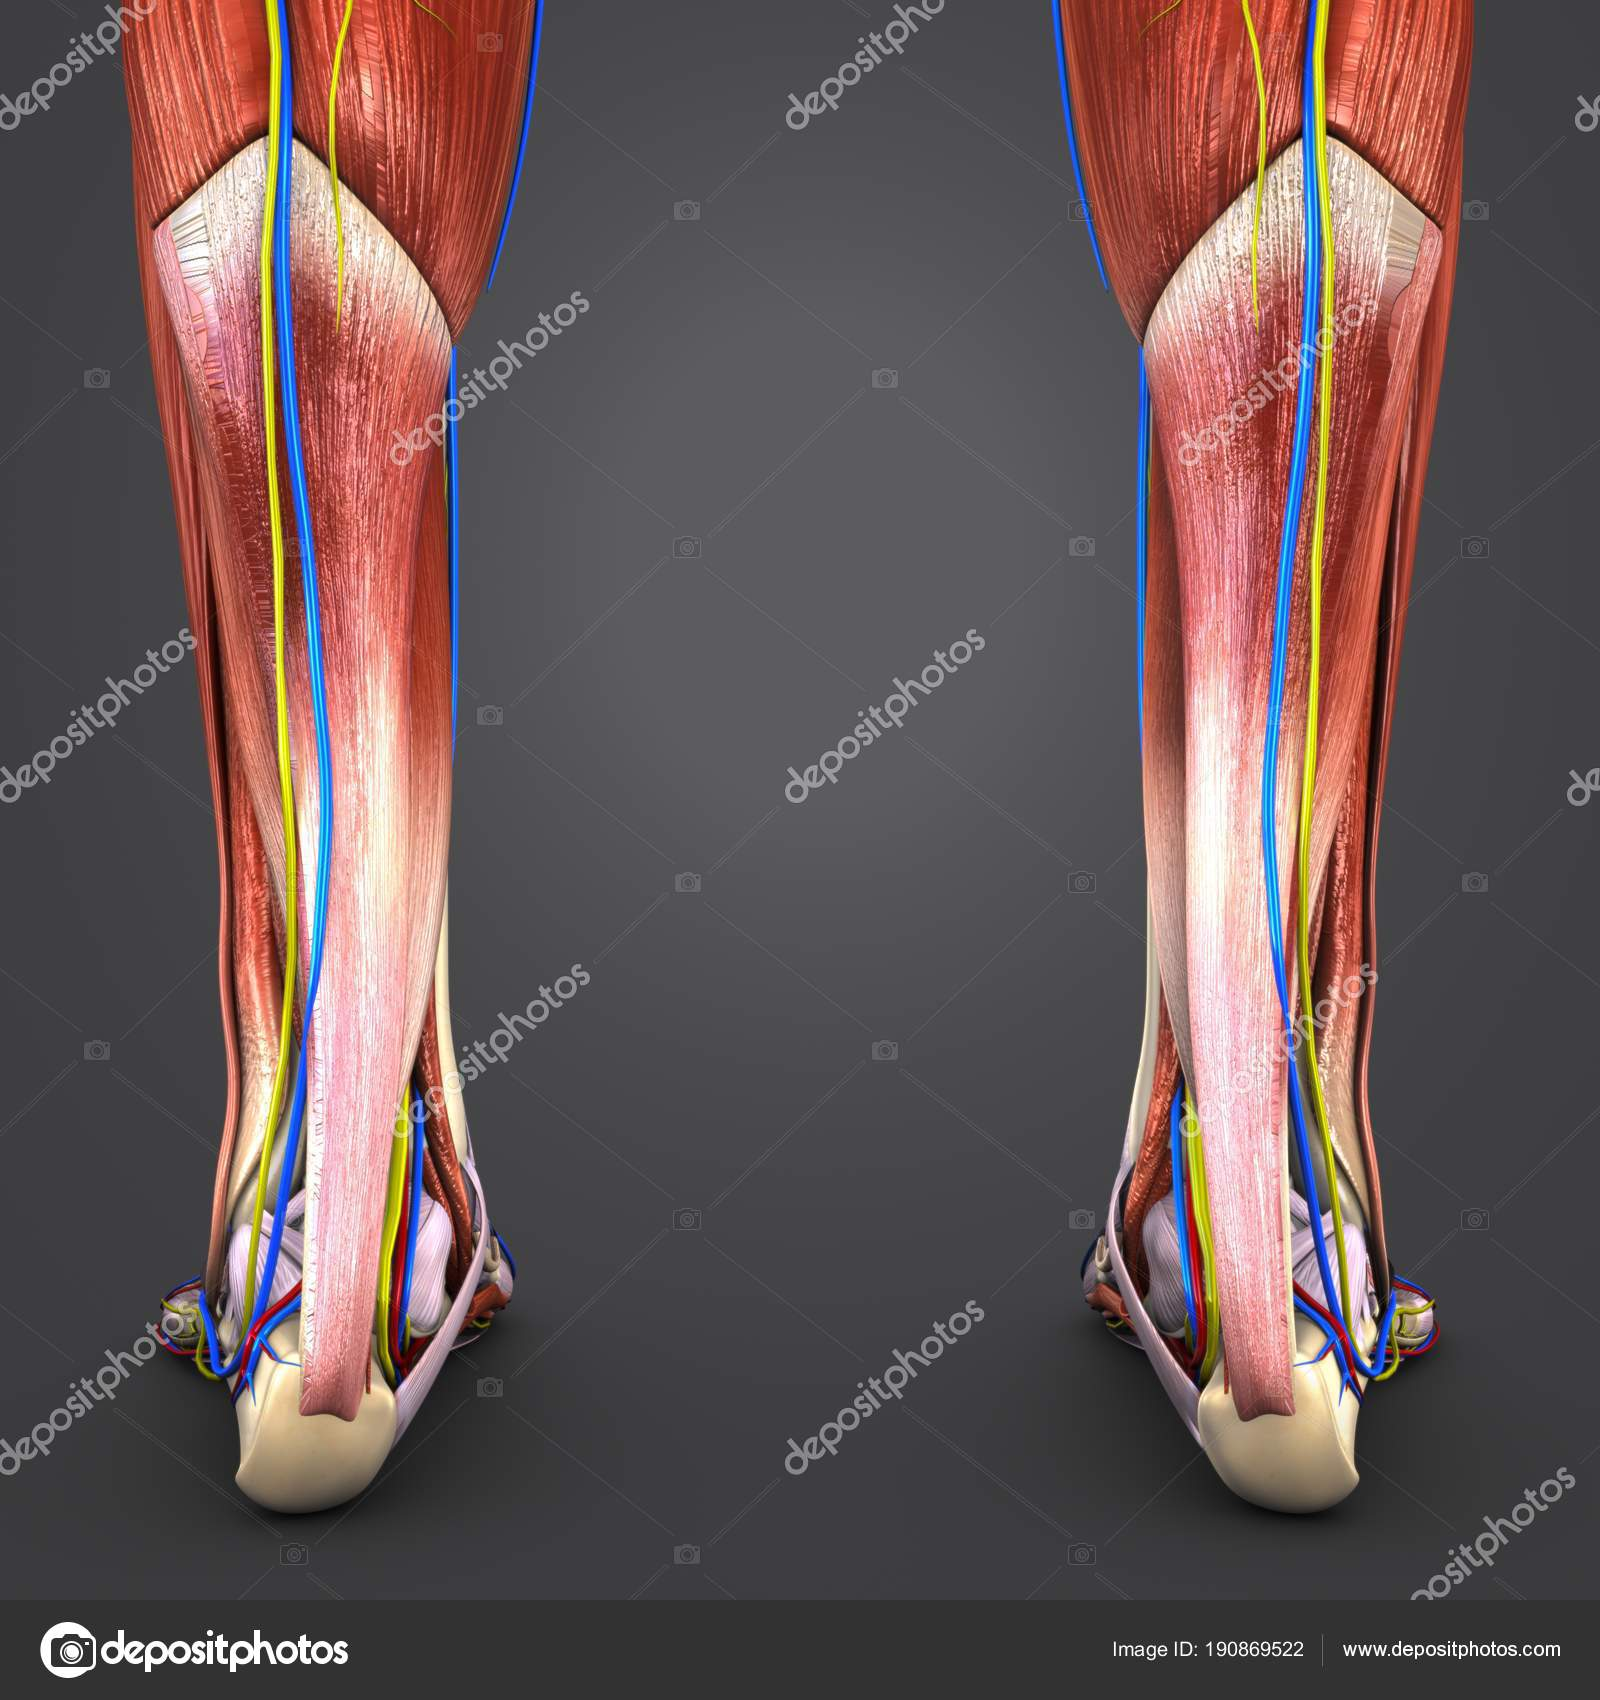 Colorful Medical Illustration Human Muscles Bones Legs Circulatory